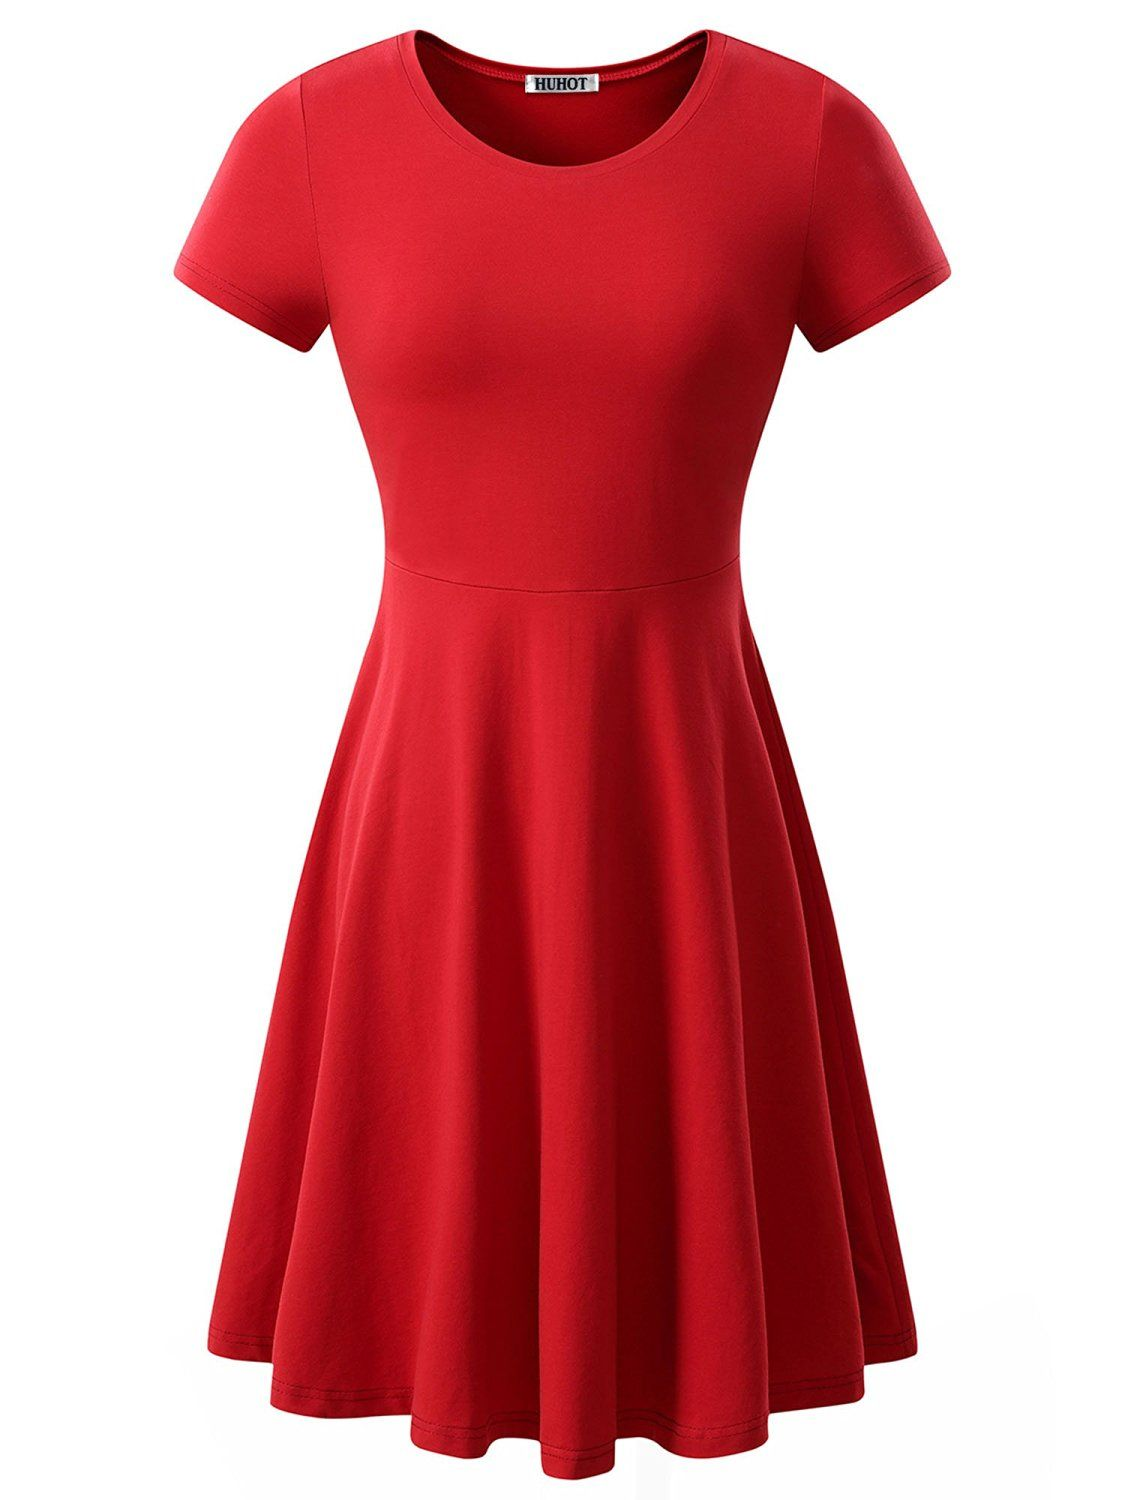 Christmas dress casual - Women Short Sleeve Round Neck Summer Casual Flared Midi Dress See This Awesome Image